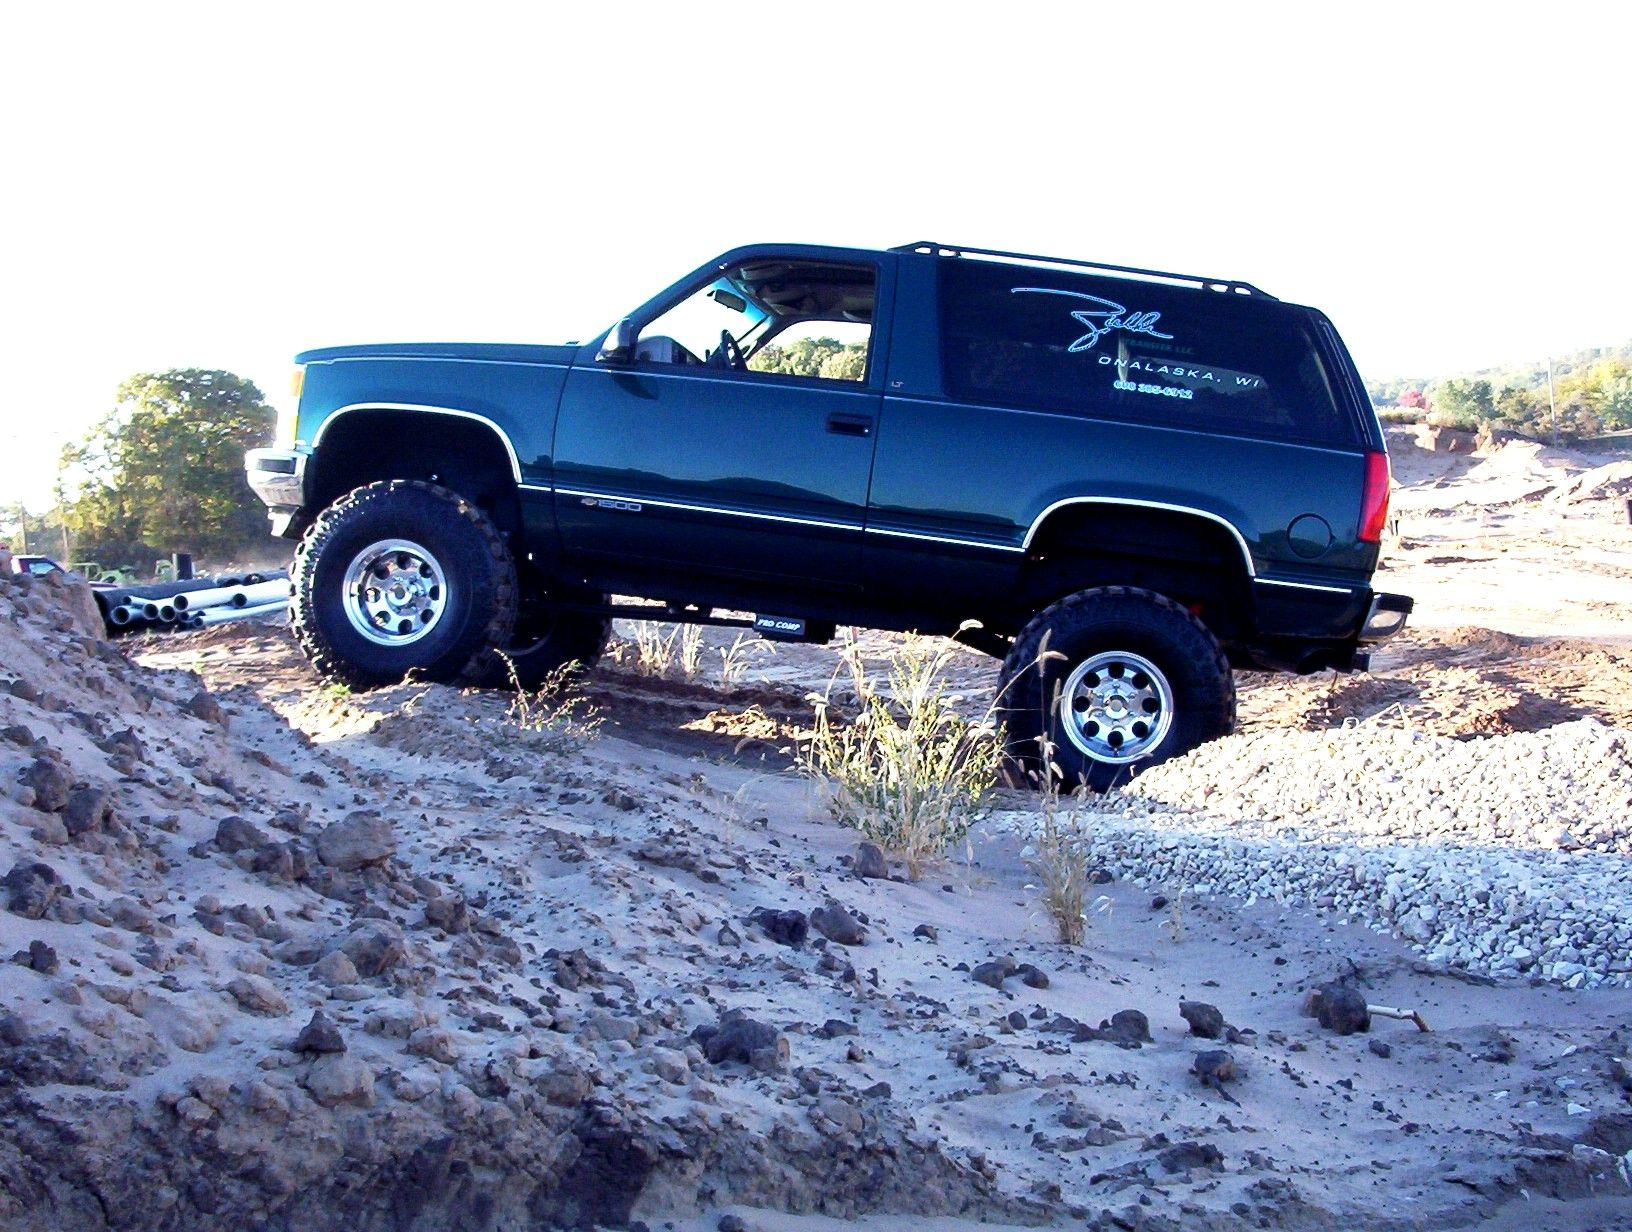 1995 Chevy Tahoe 2dr 4x4 Cool Rides Pinterest 4x4